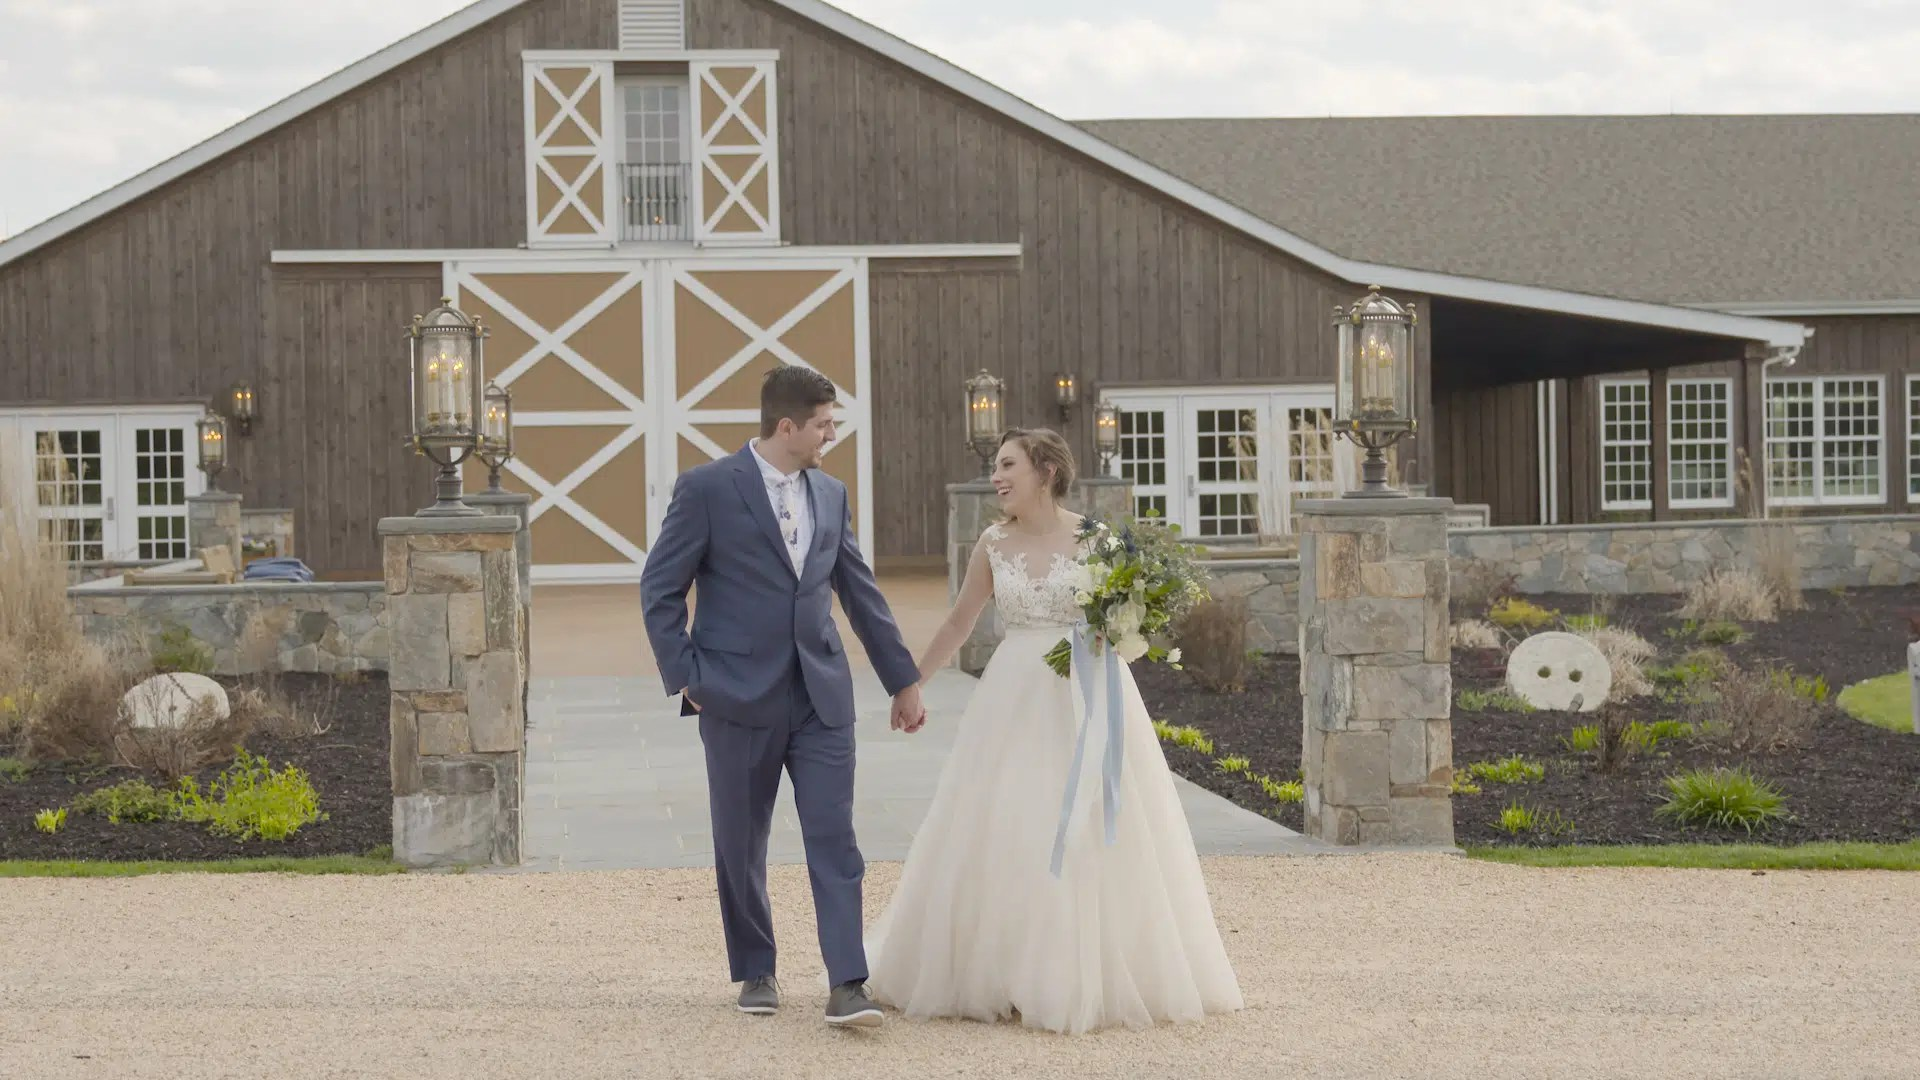 Tony & Steph Wedding Highlights Video at The Lodge, Virginia